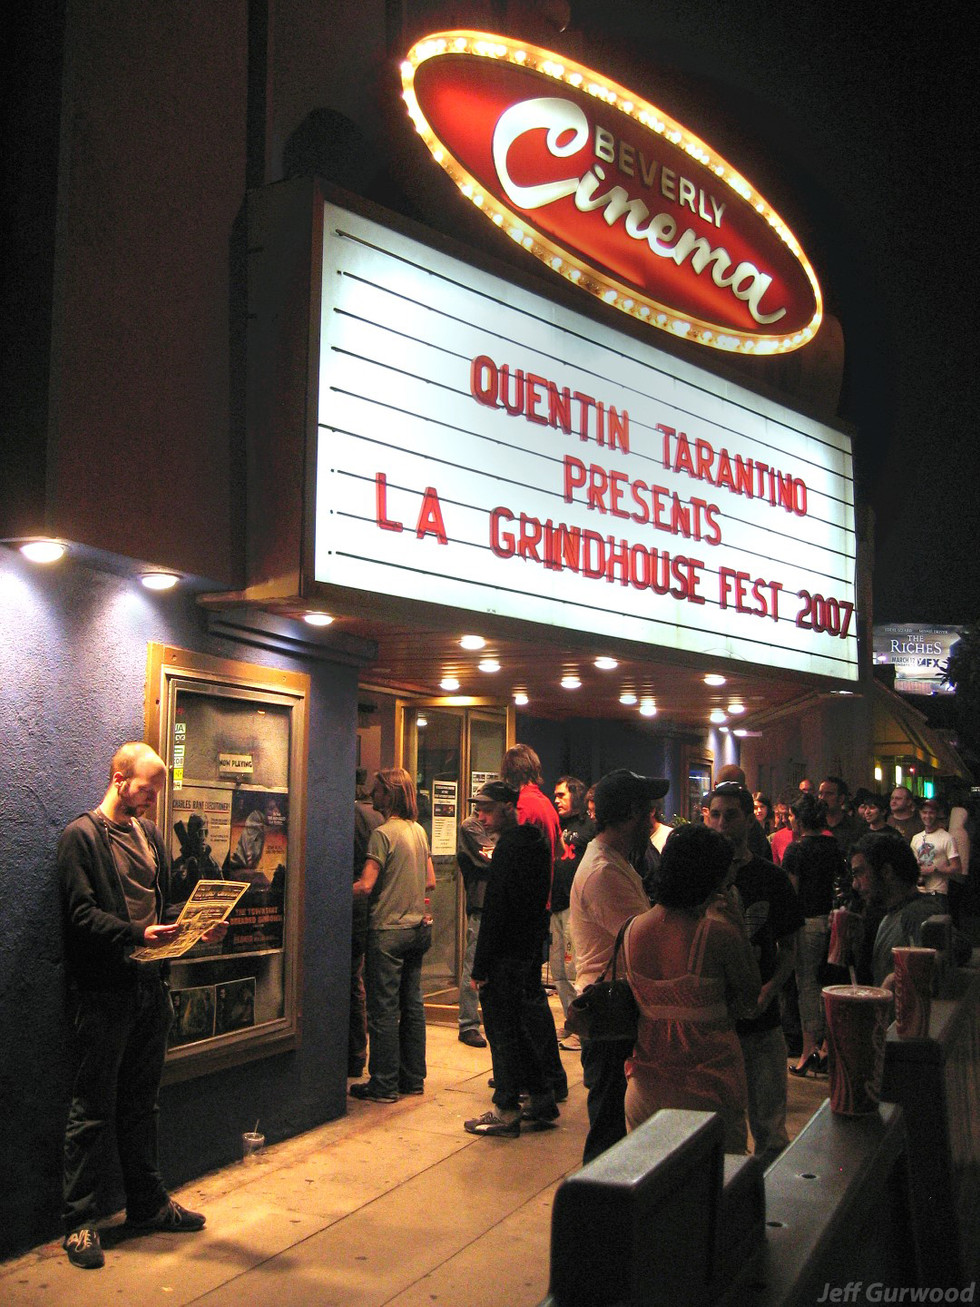 New Beverly Grindhouse Fest 2007